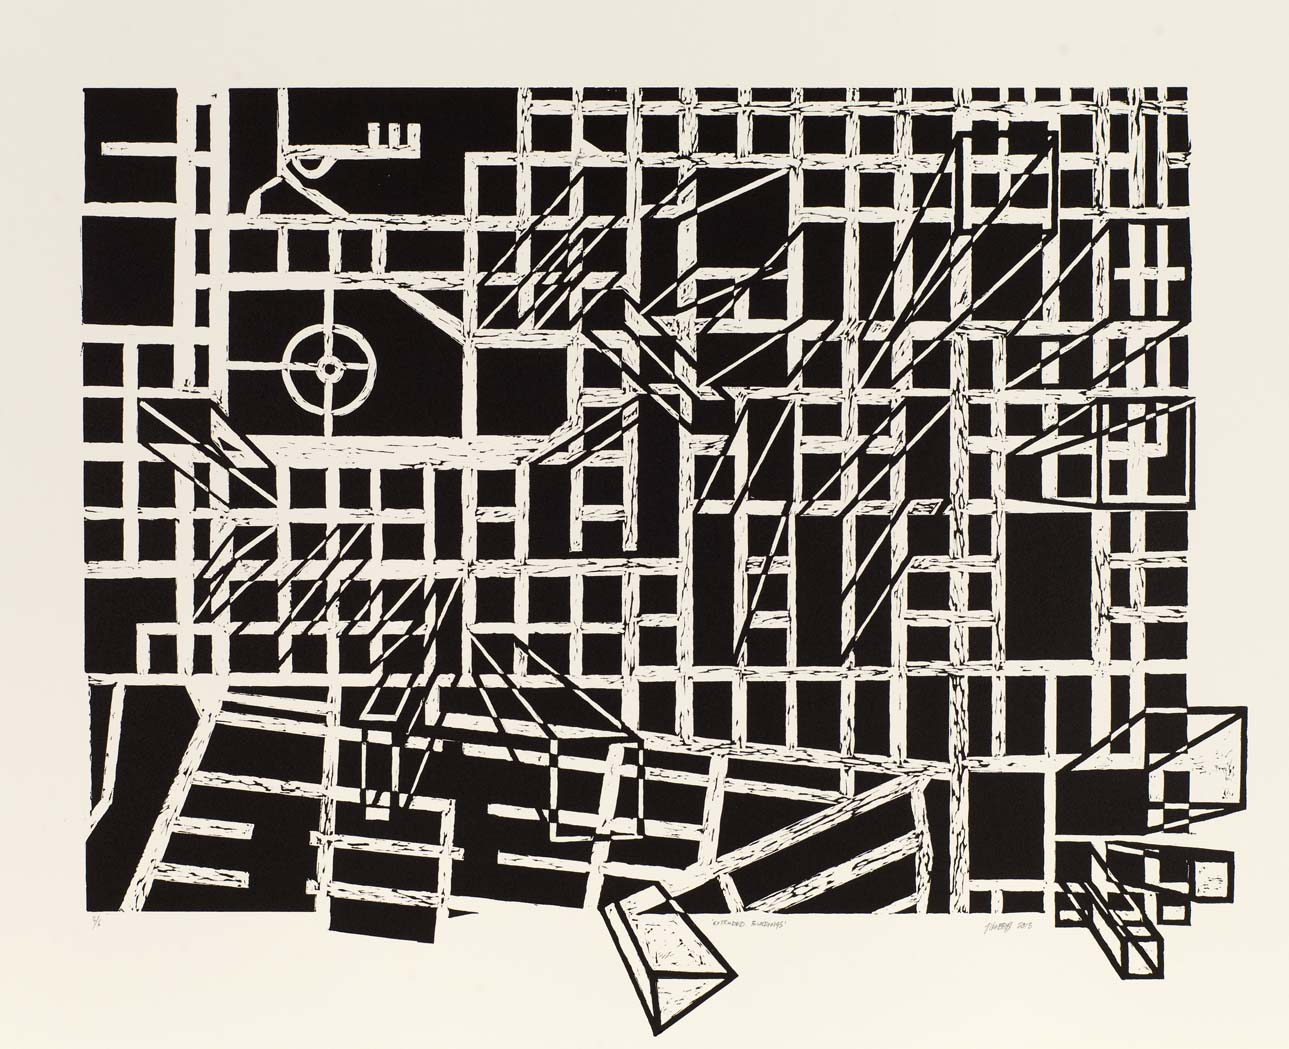 Hobbs-Extruded Buildings-Linocut-2013-LR